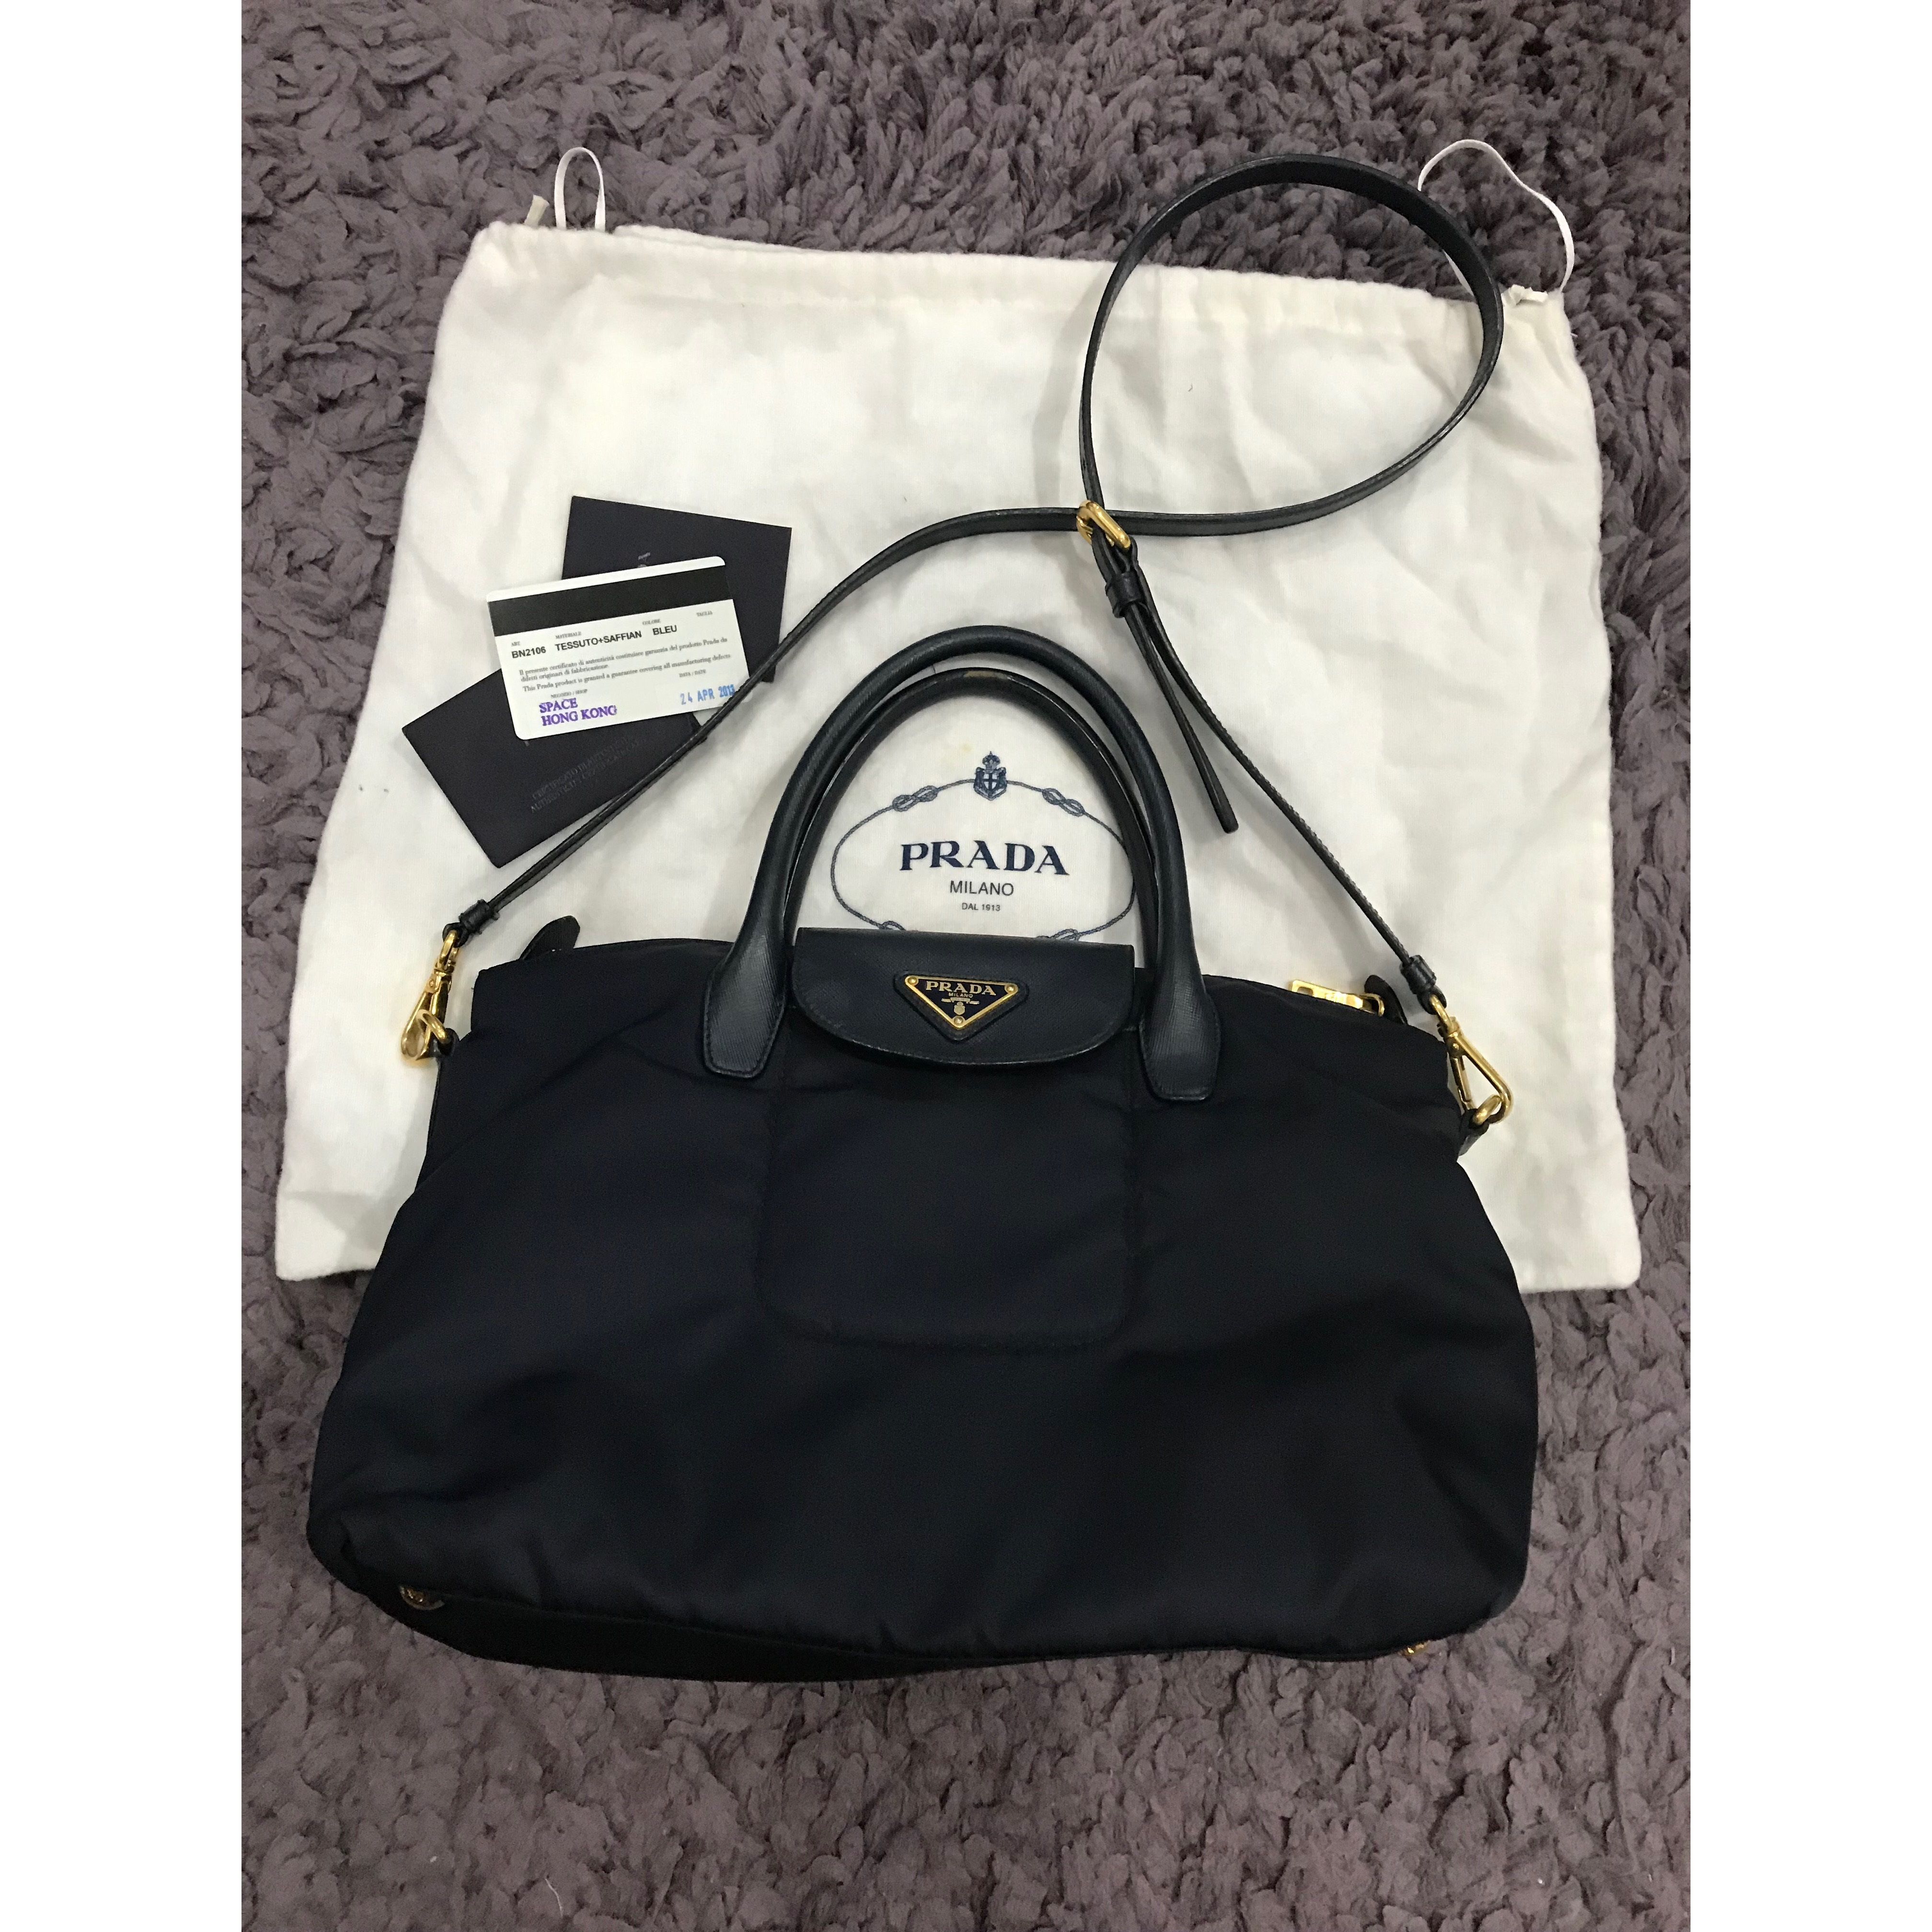 13e274d1781c85 Prada in blue black colour Condition : 8.5/10 selling very cheap Selling  Price : SGD485 / RM1,450 only WhatsApp for more details Contact via  WhatsApp : + ...